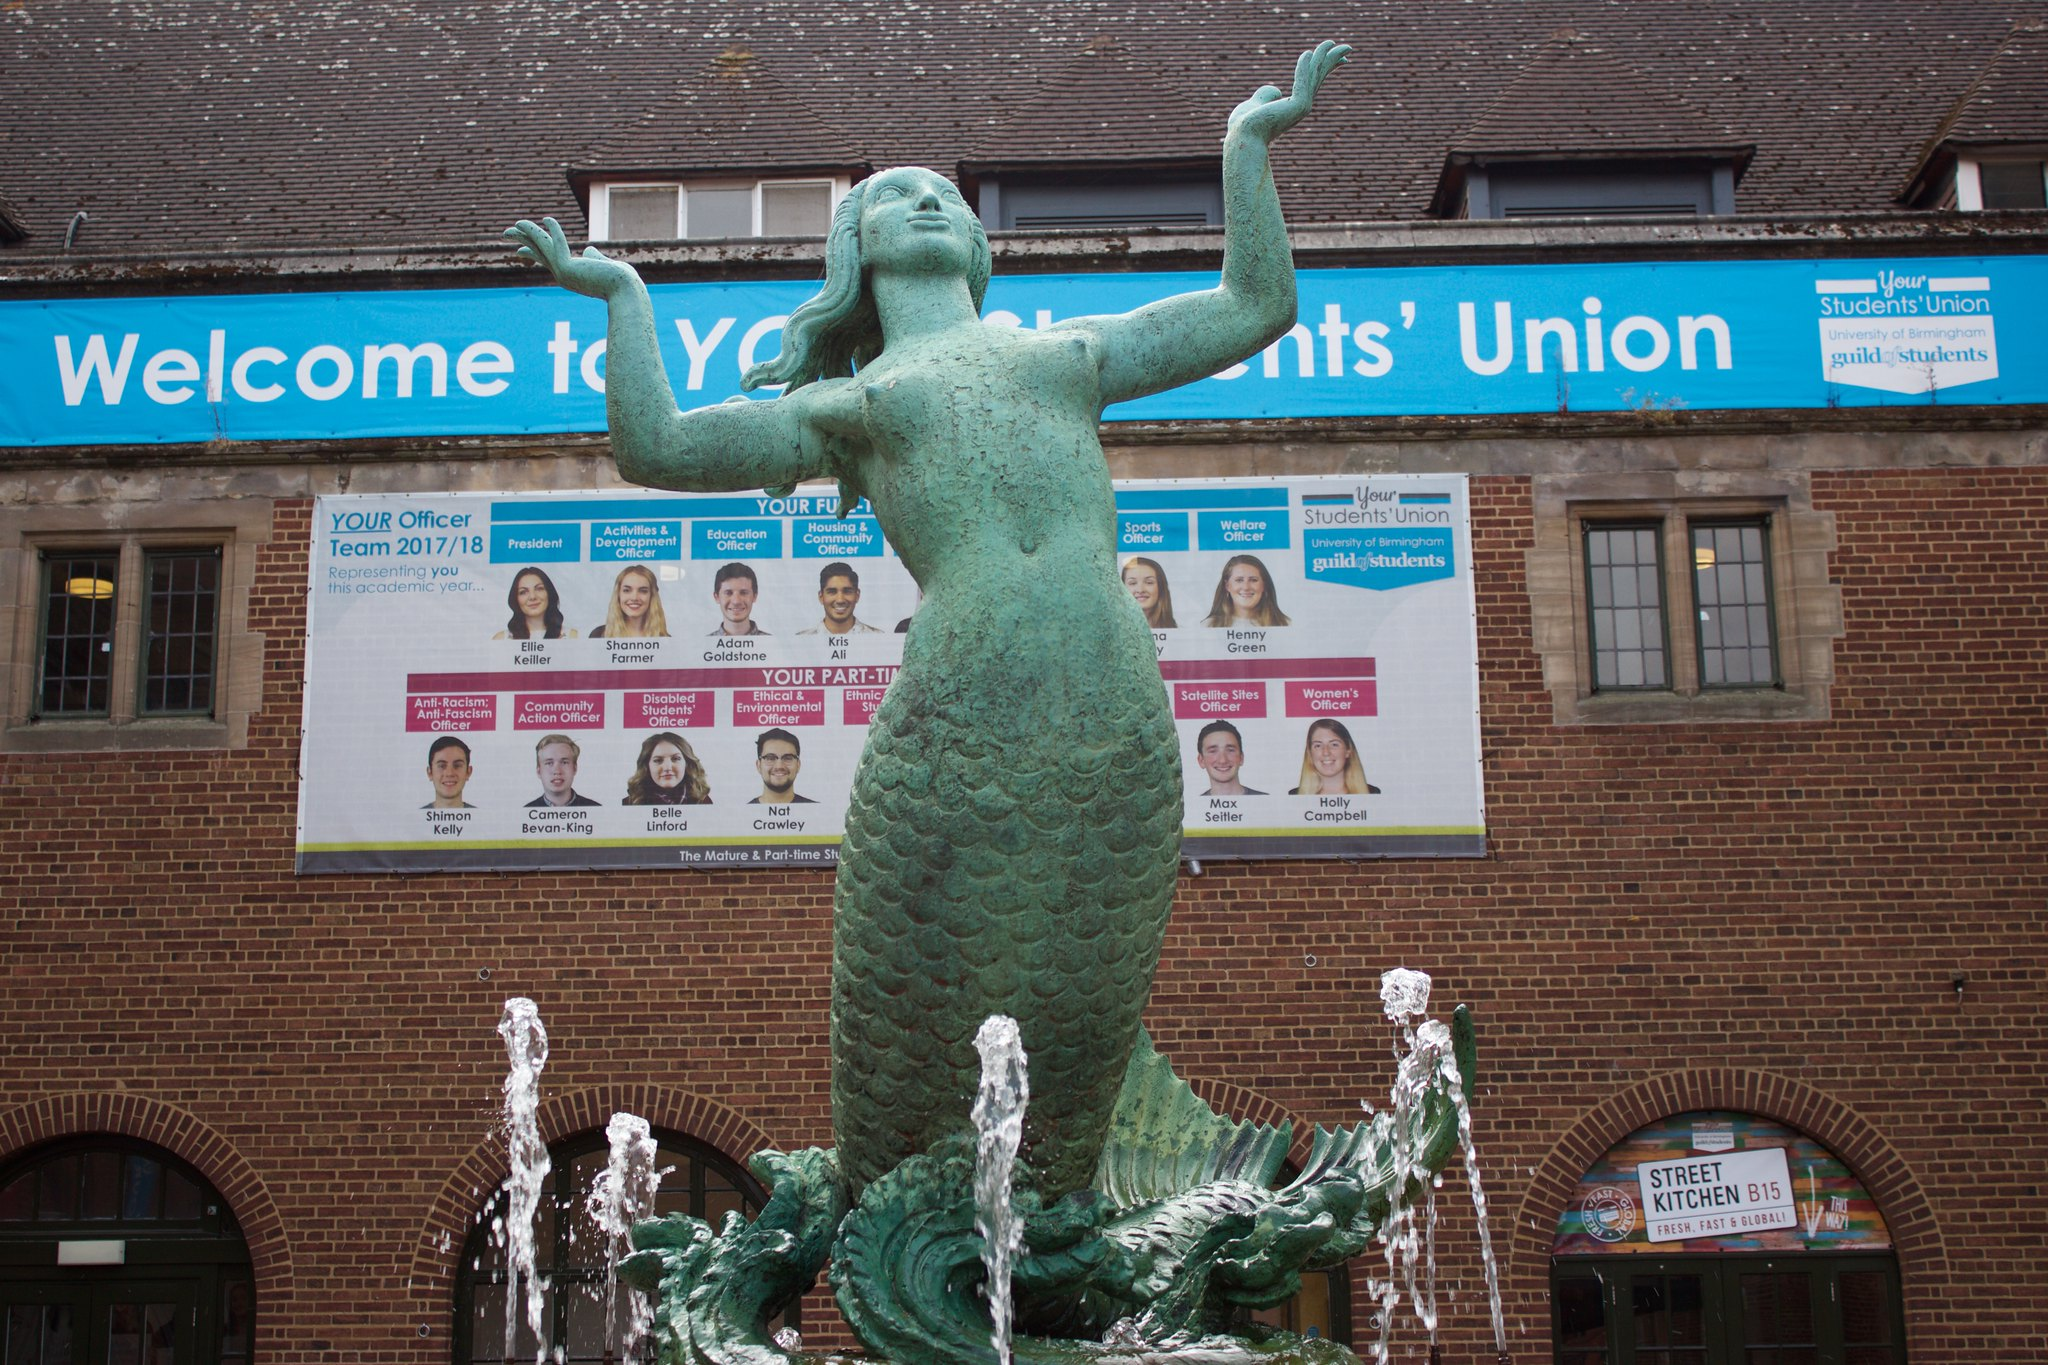 The mermaid fountain outside the Guild of Students building